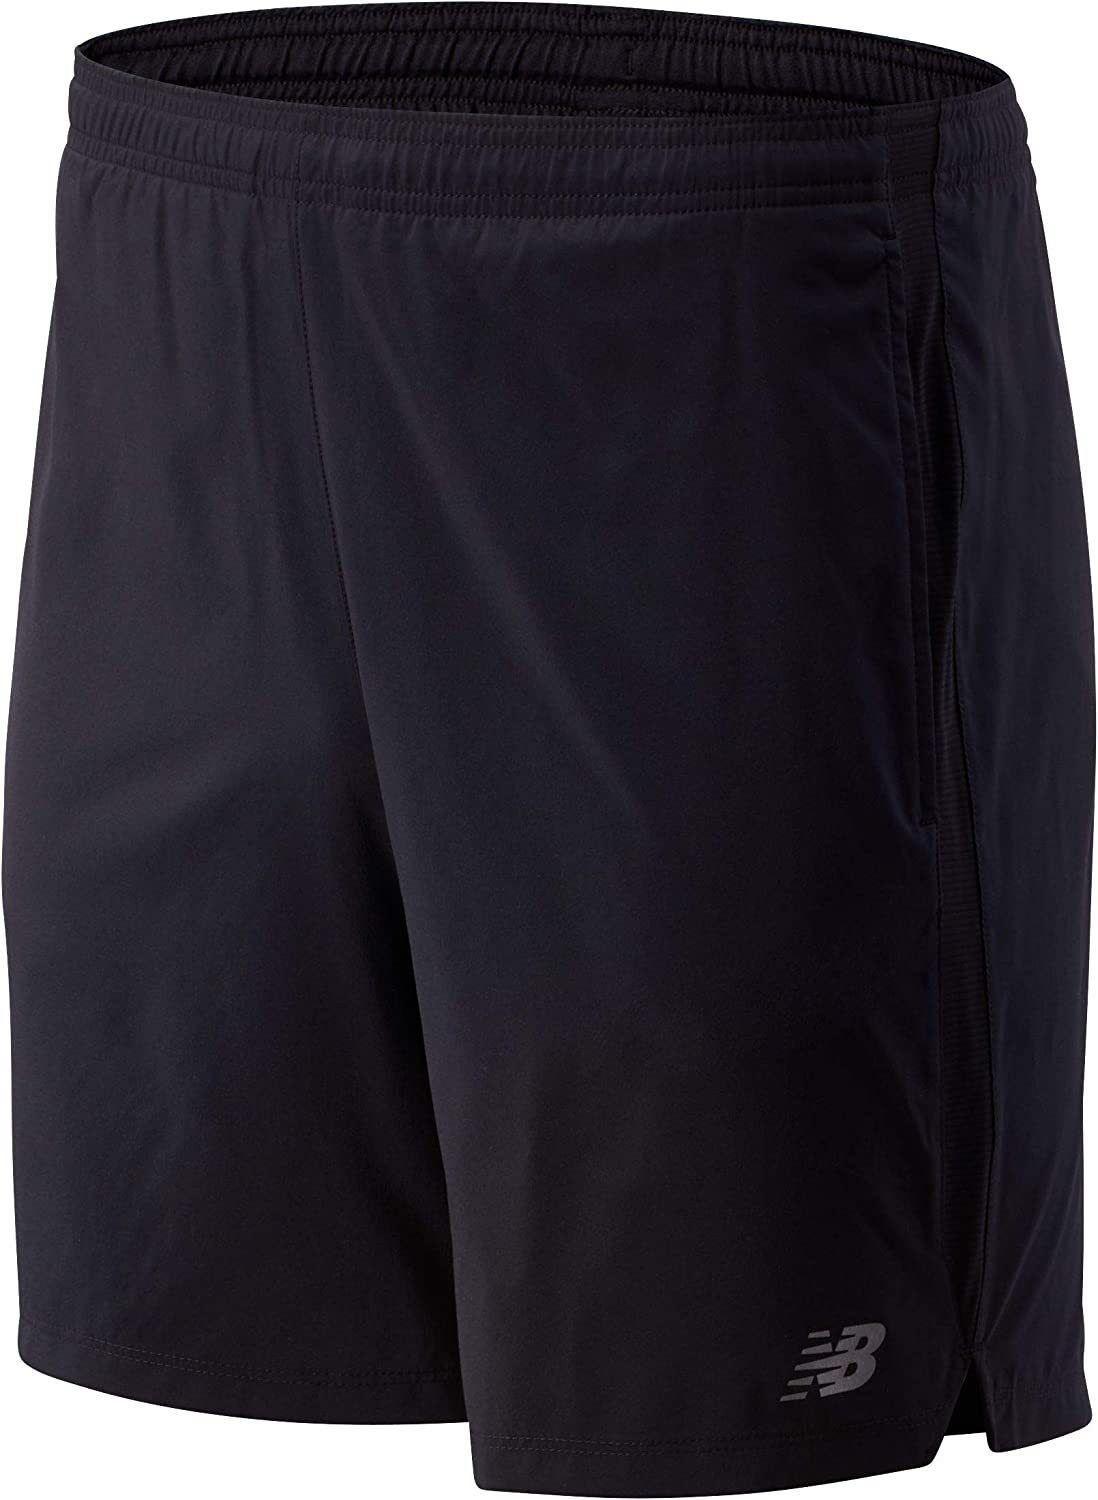 New Balance safety Men's Accelerate Short Bombing free shipping 7 Inch